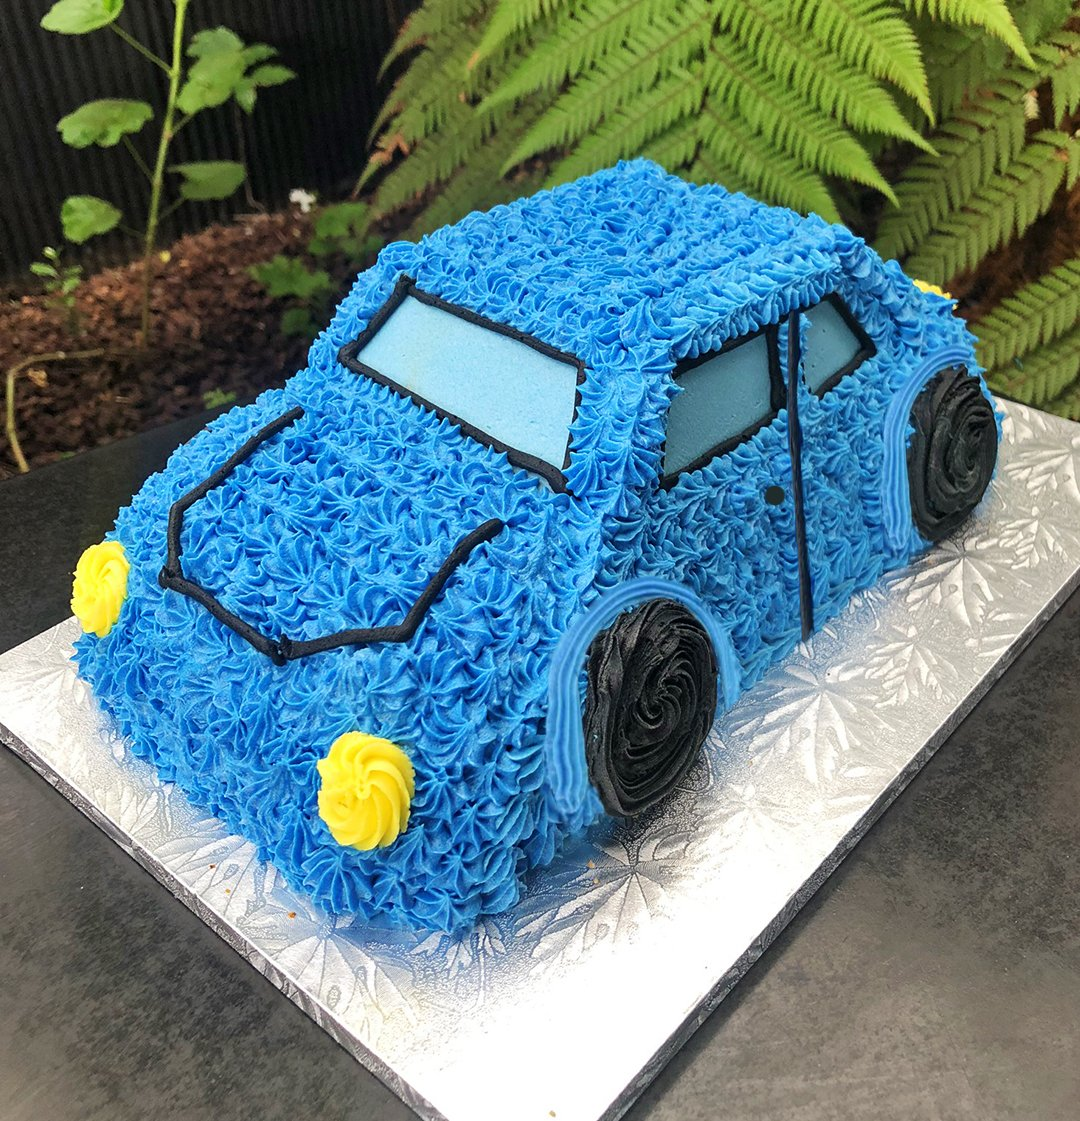 Magnificent 3D Car In Blue Birthday Cake Kidds Cakes Bakery Personalised Birthday Cards Veneteletsinfo